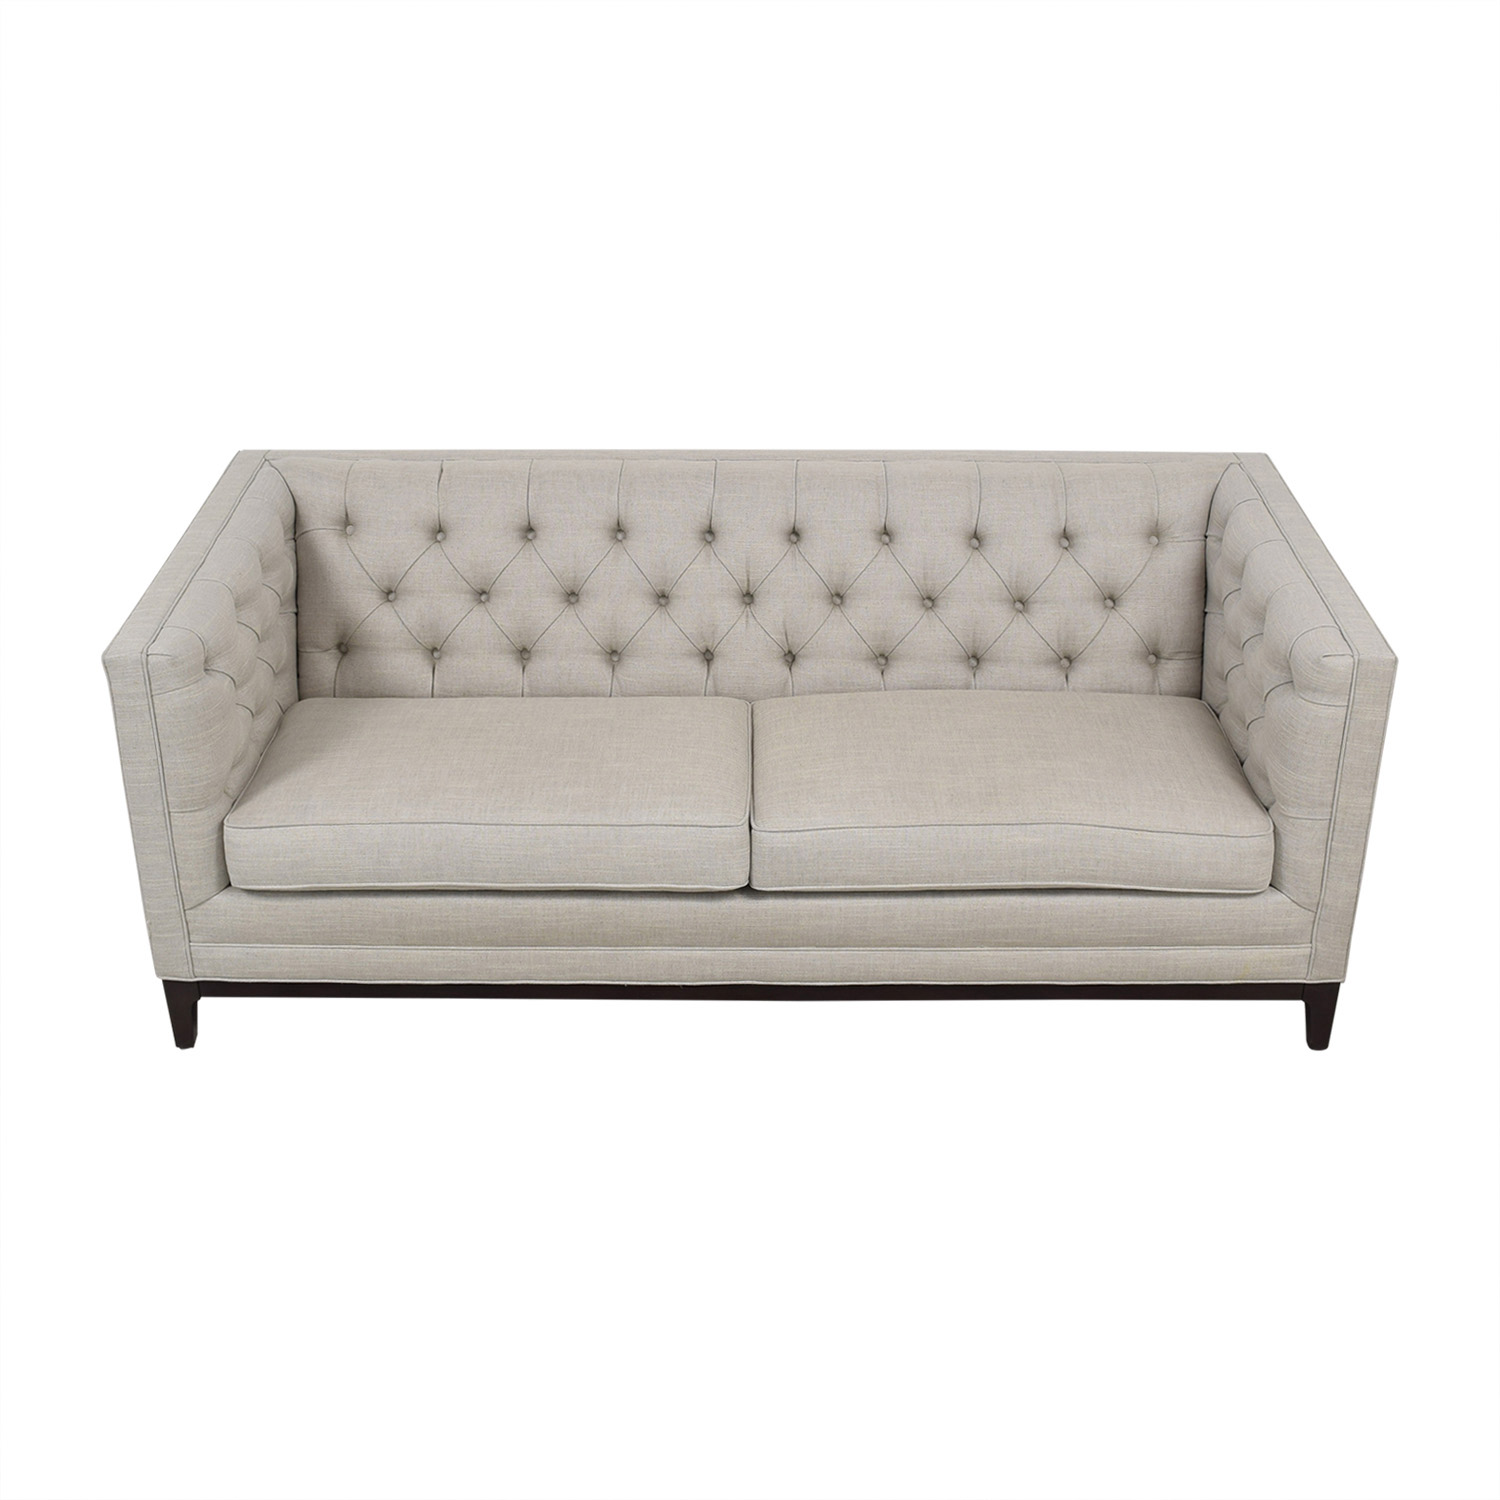 Ethan Allen Ethan Allen Anderson Couch pa